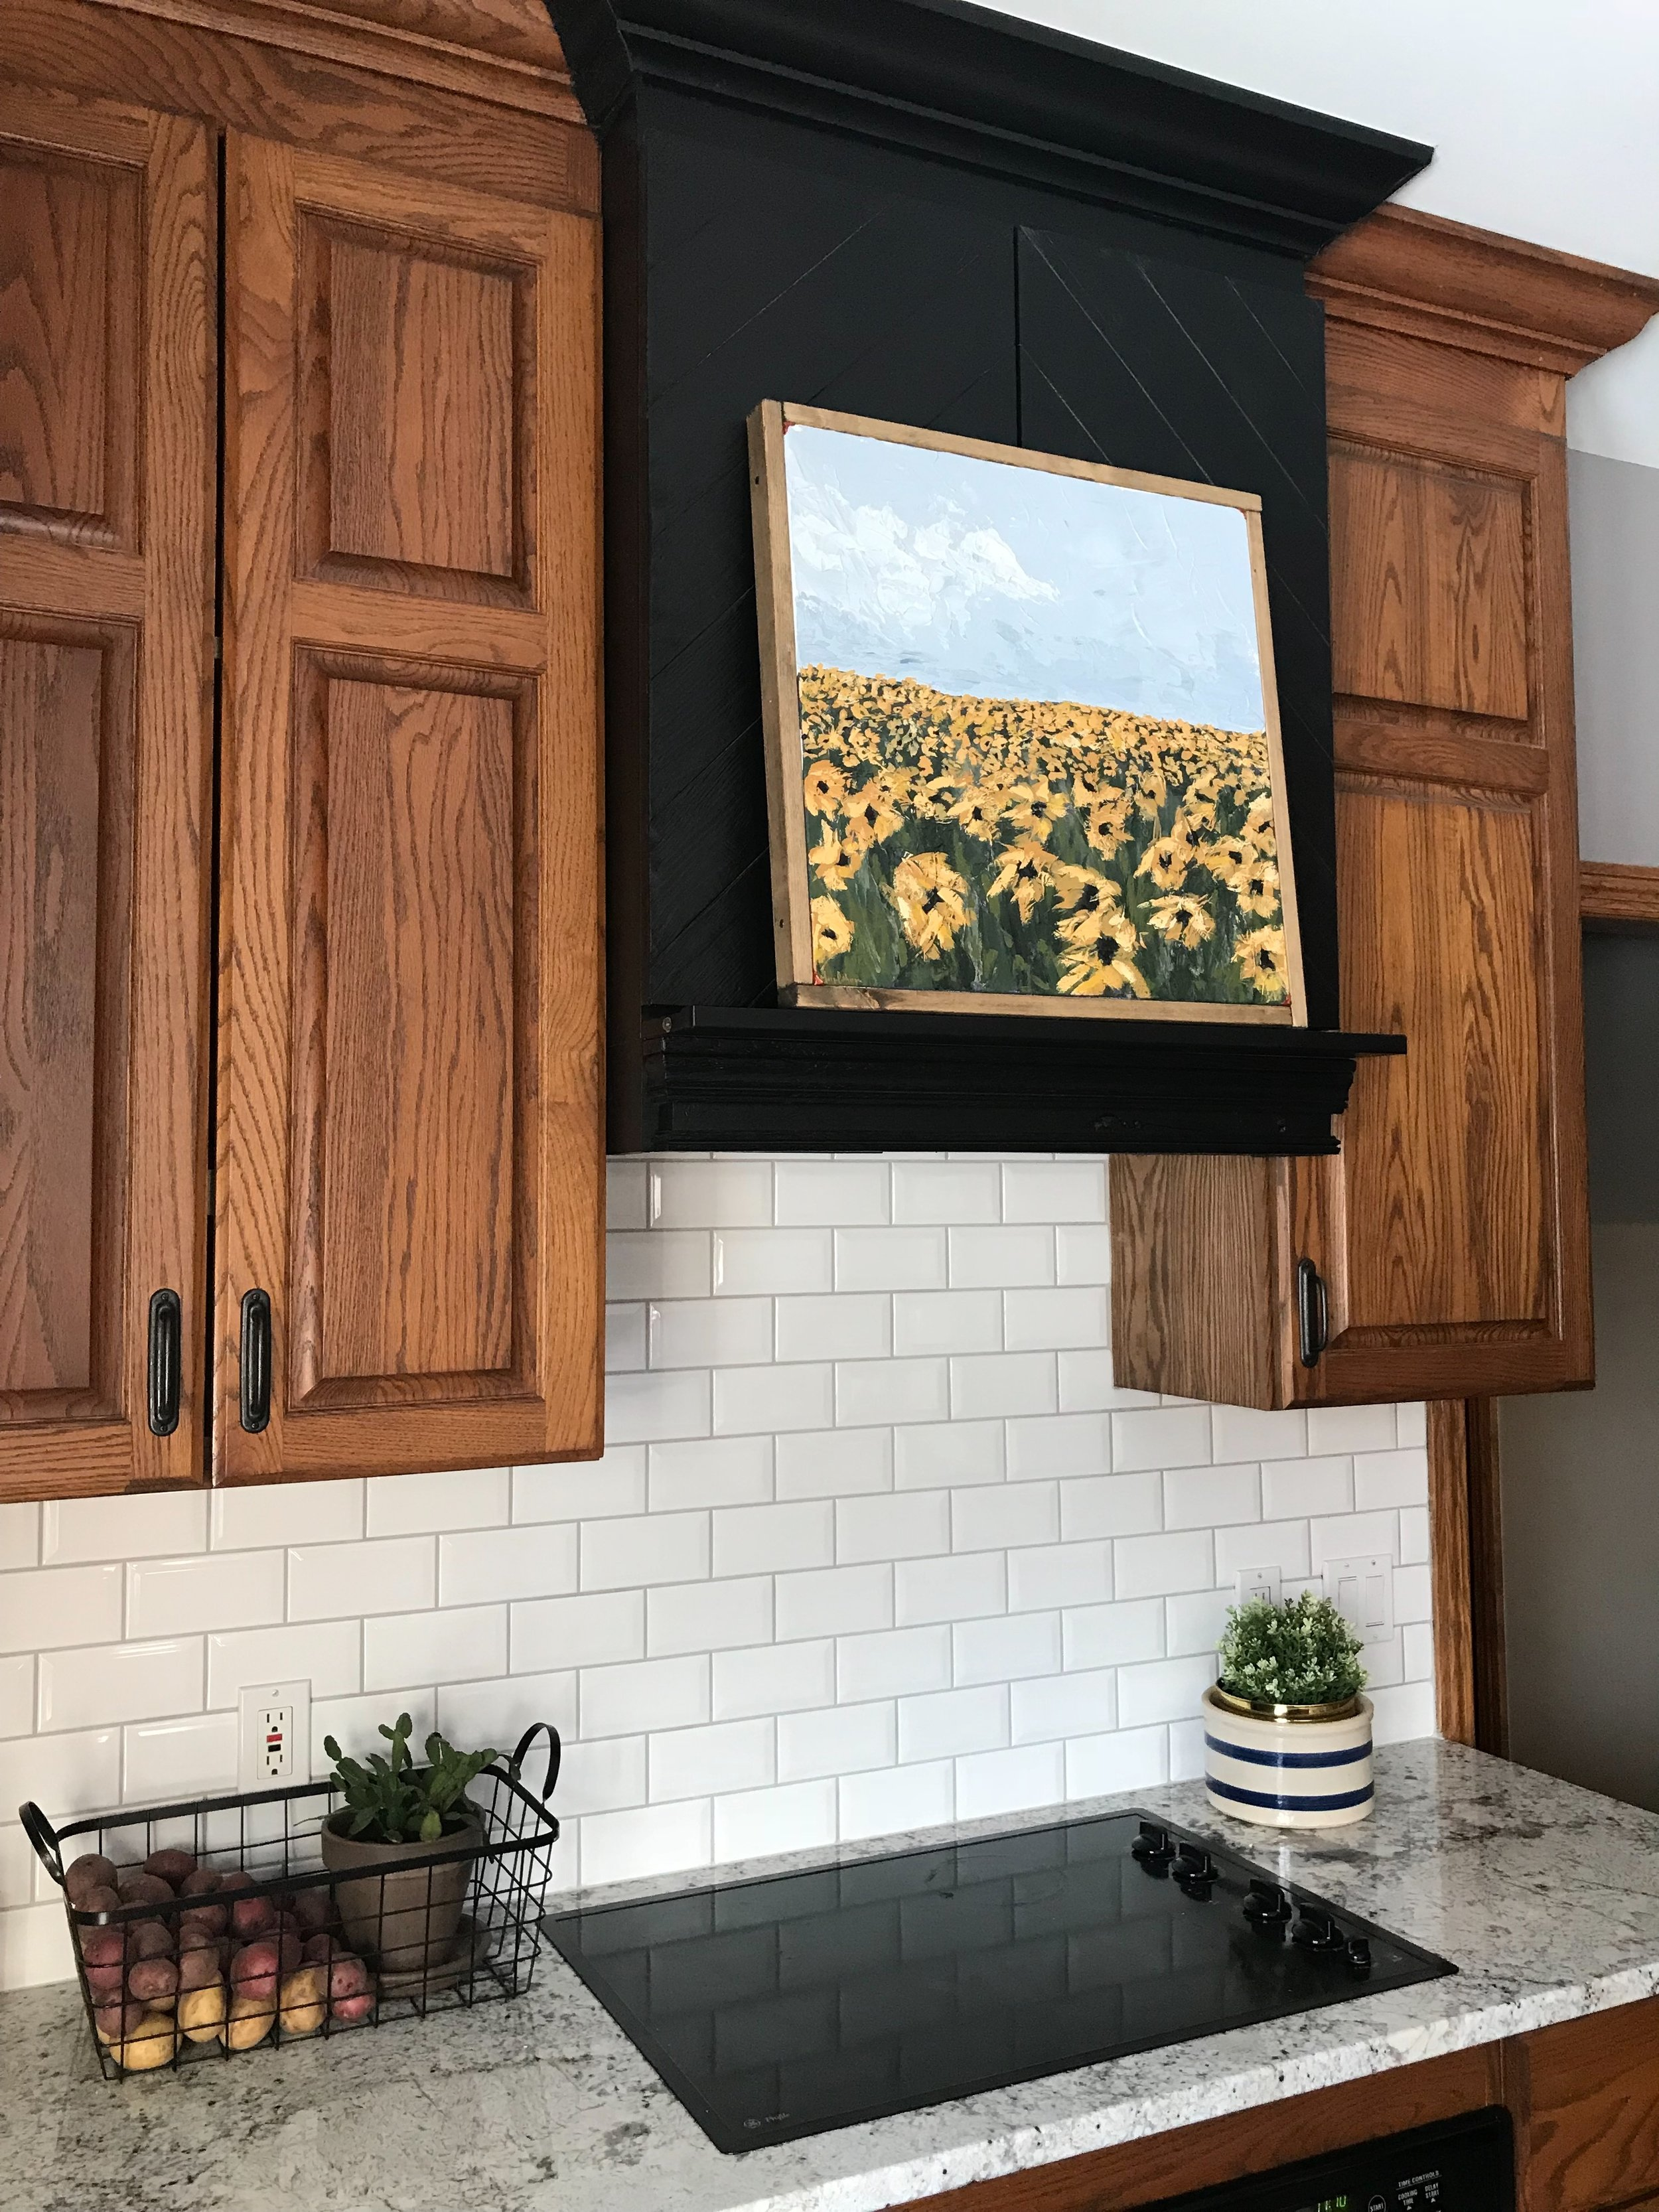 Oak Cabinets An Artist S Blog About Art Wallpaper Decor Margaritas And Everything You Ve Ever Wanted To Read Copper Corners